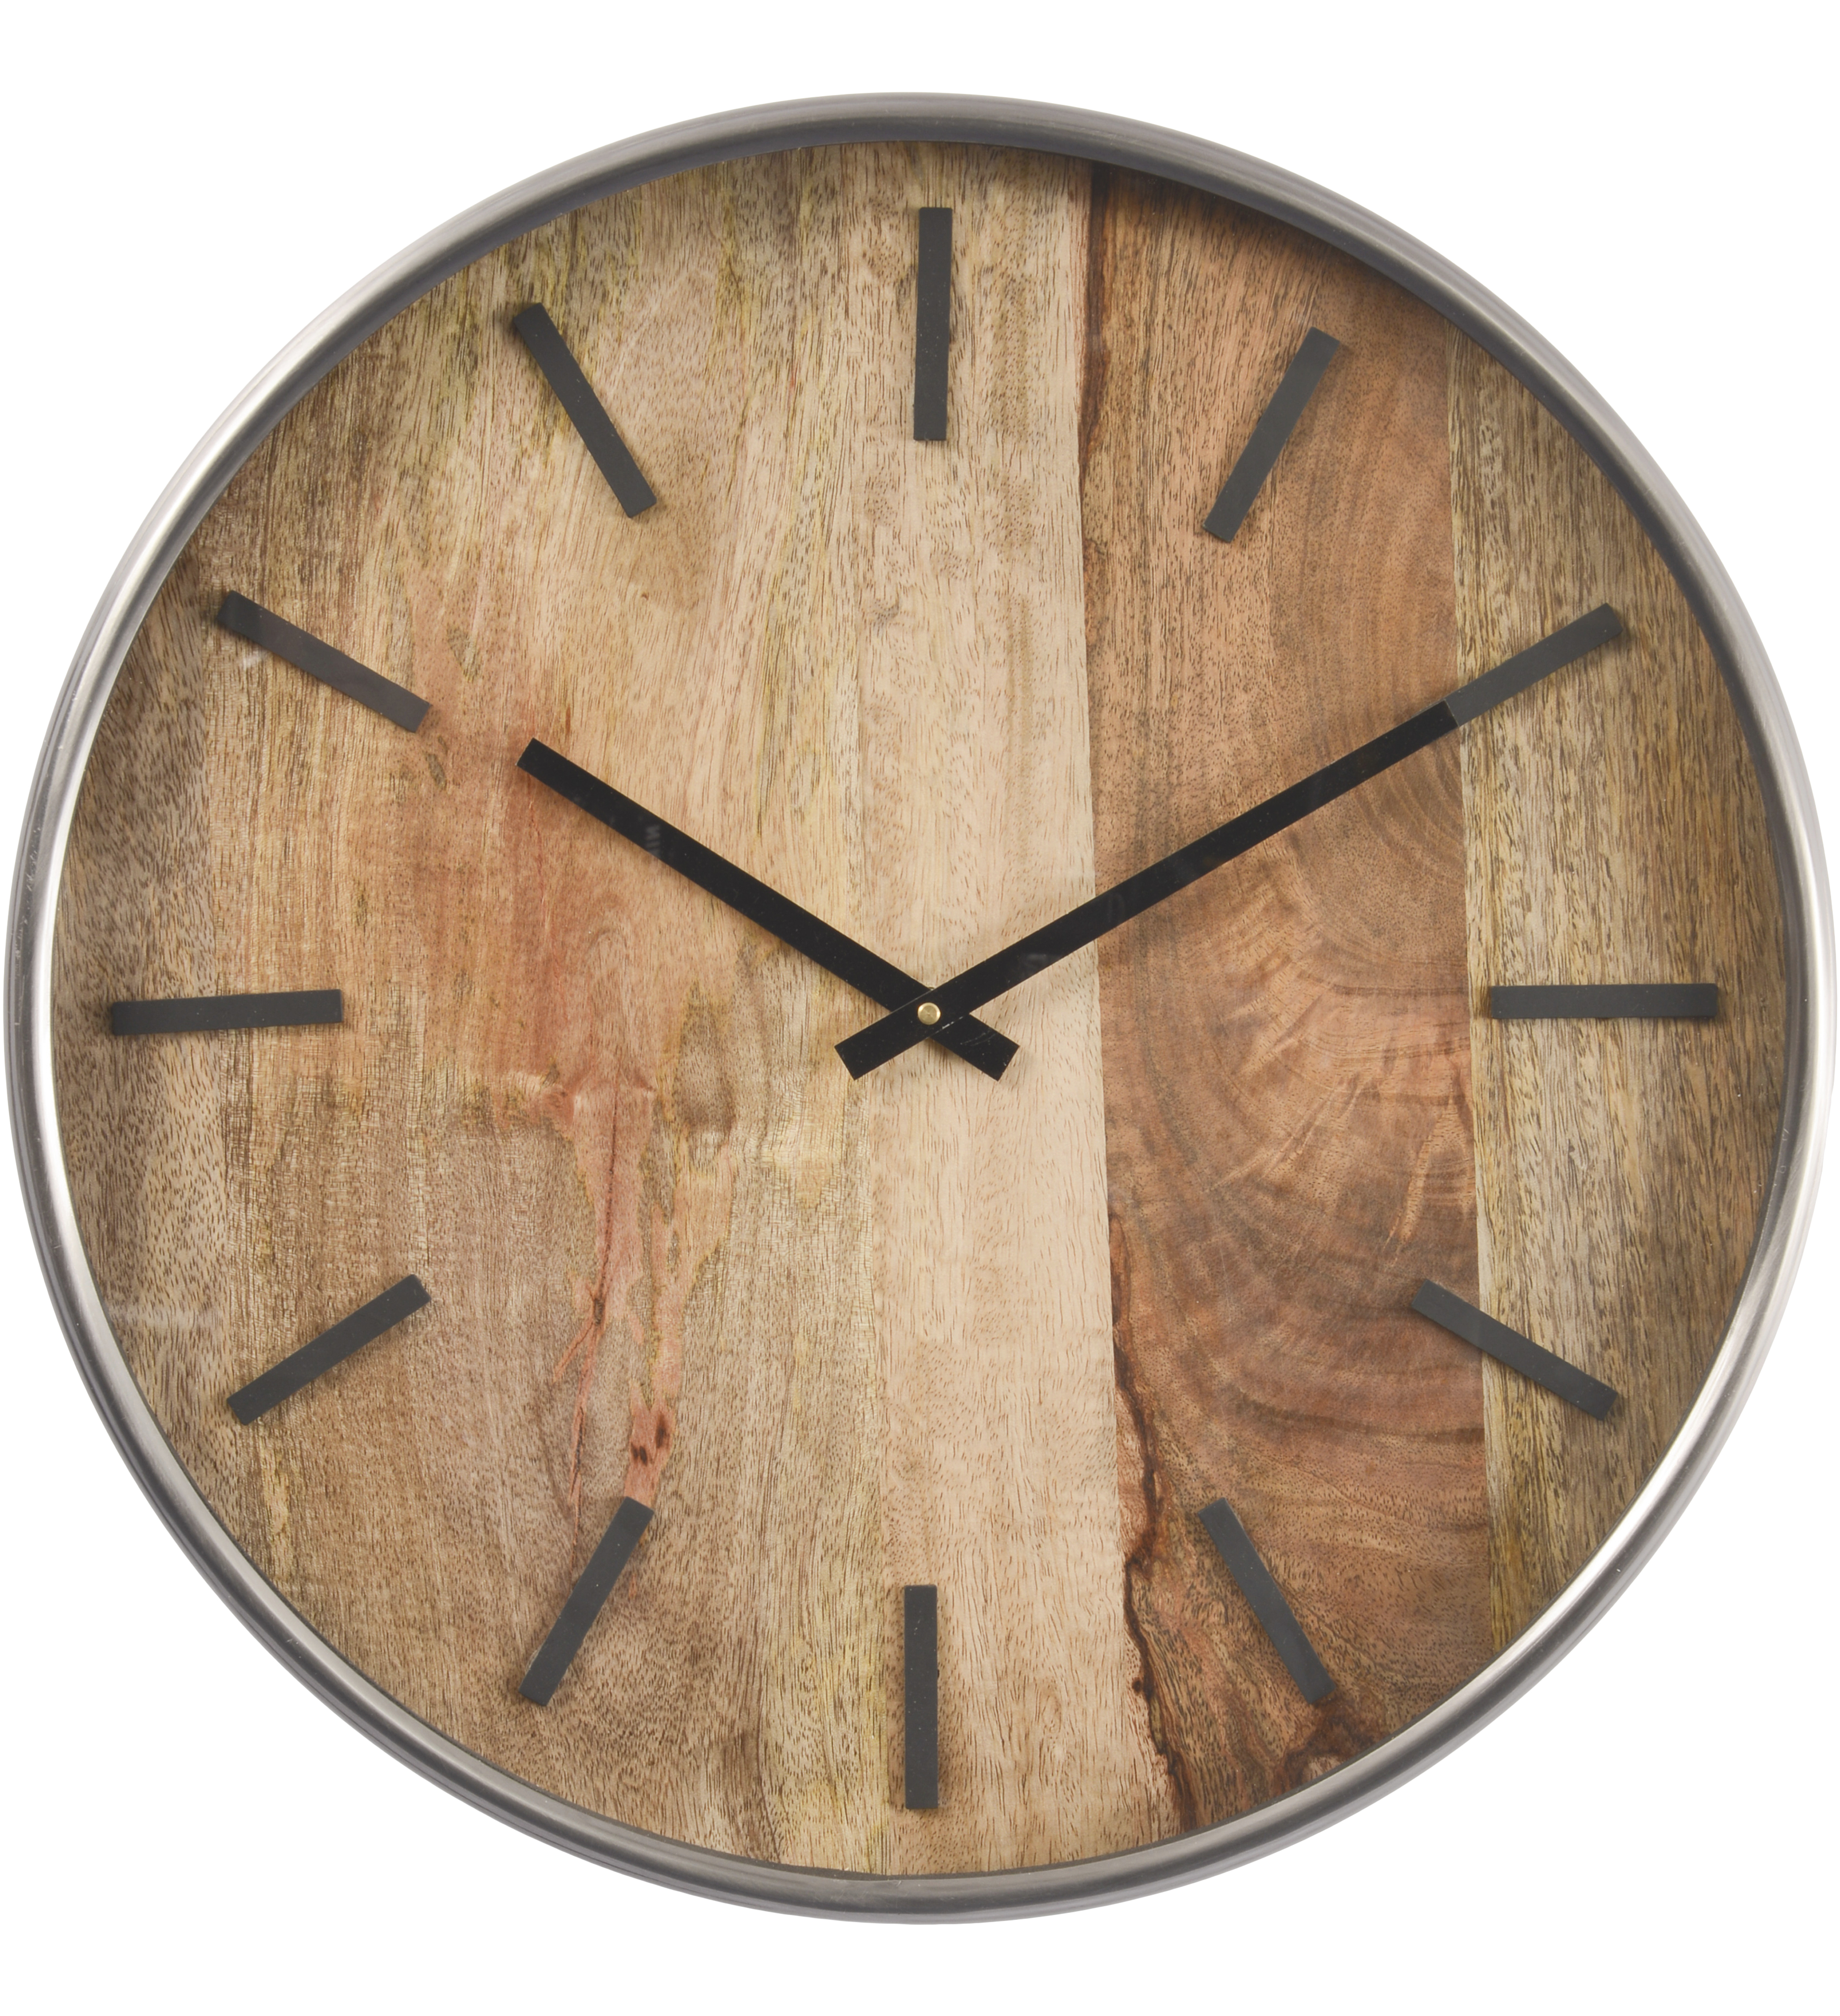 Forester wood and steel wall clock, £66 at Artisanti